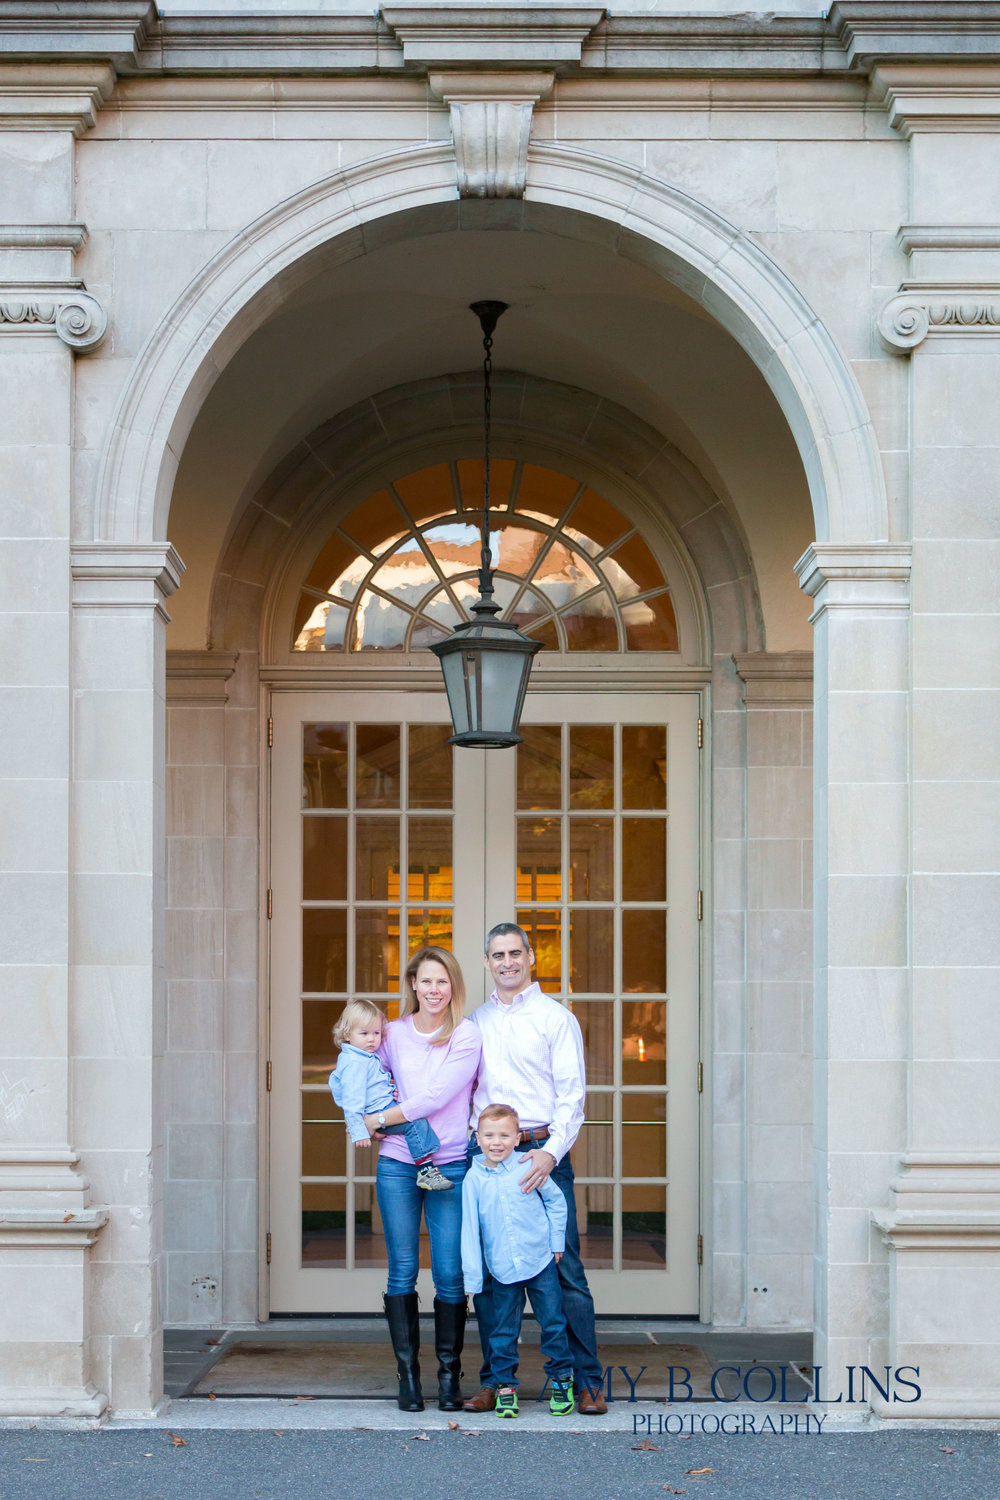 AmyBCollinsPhotography_FamilySession_H-1.jpg